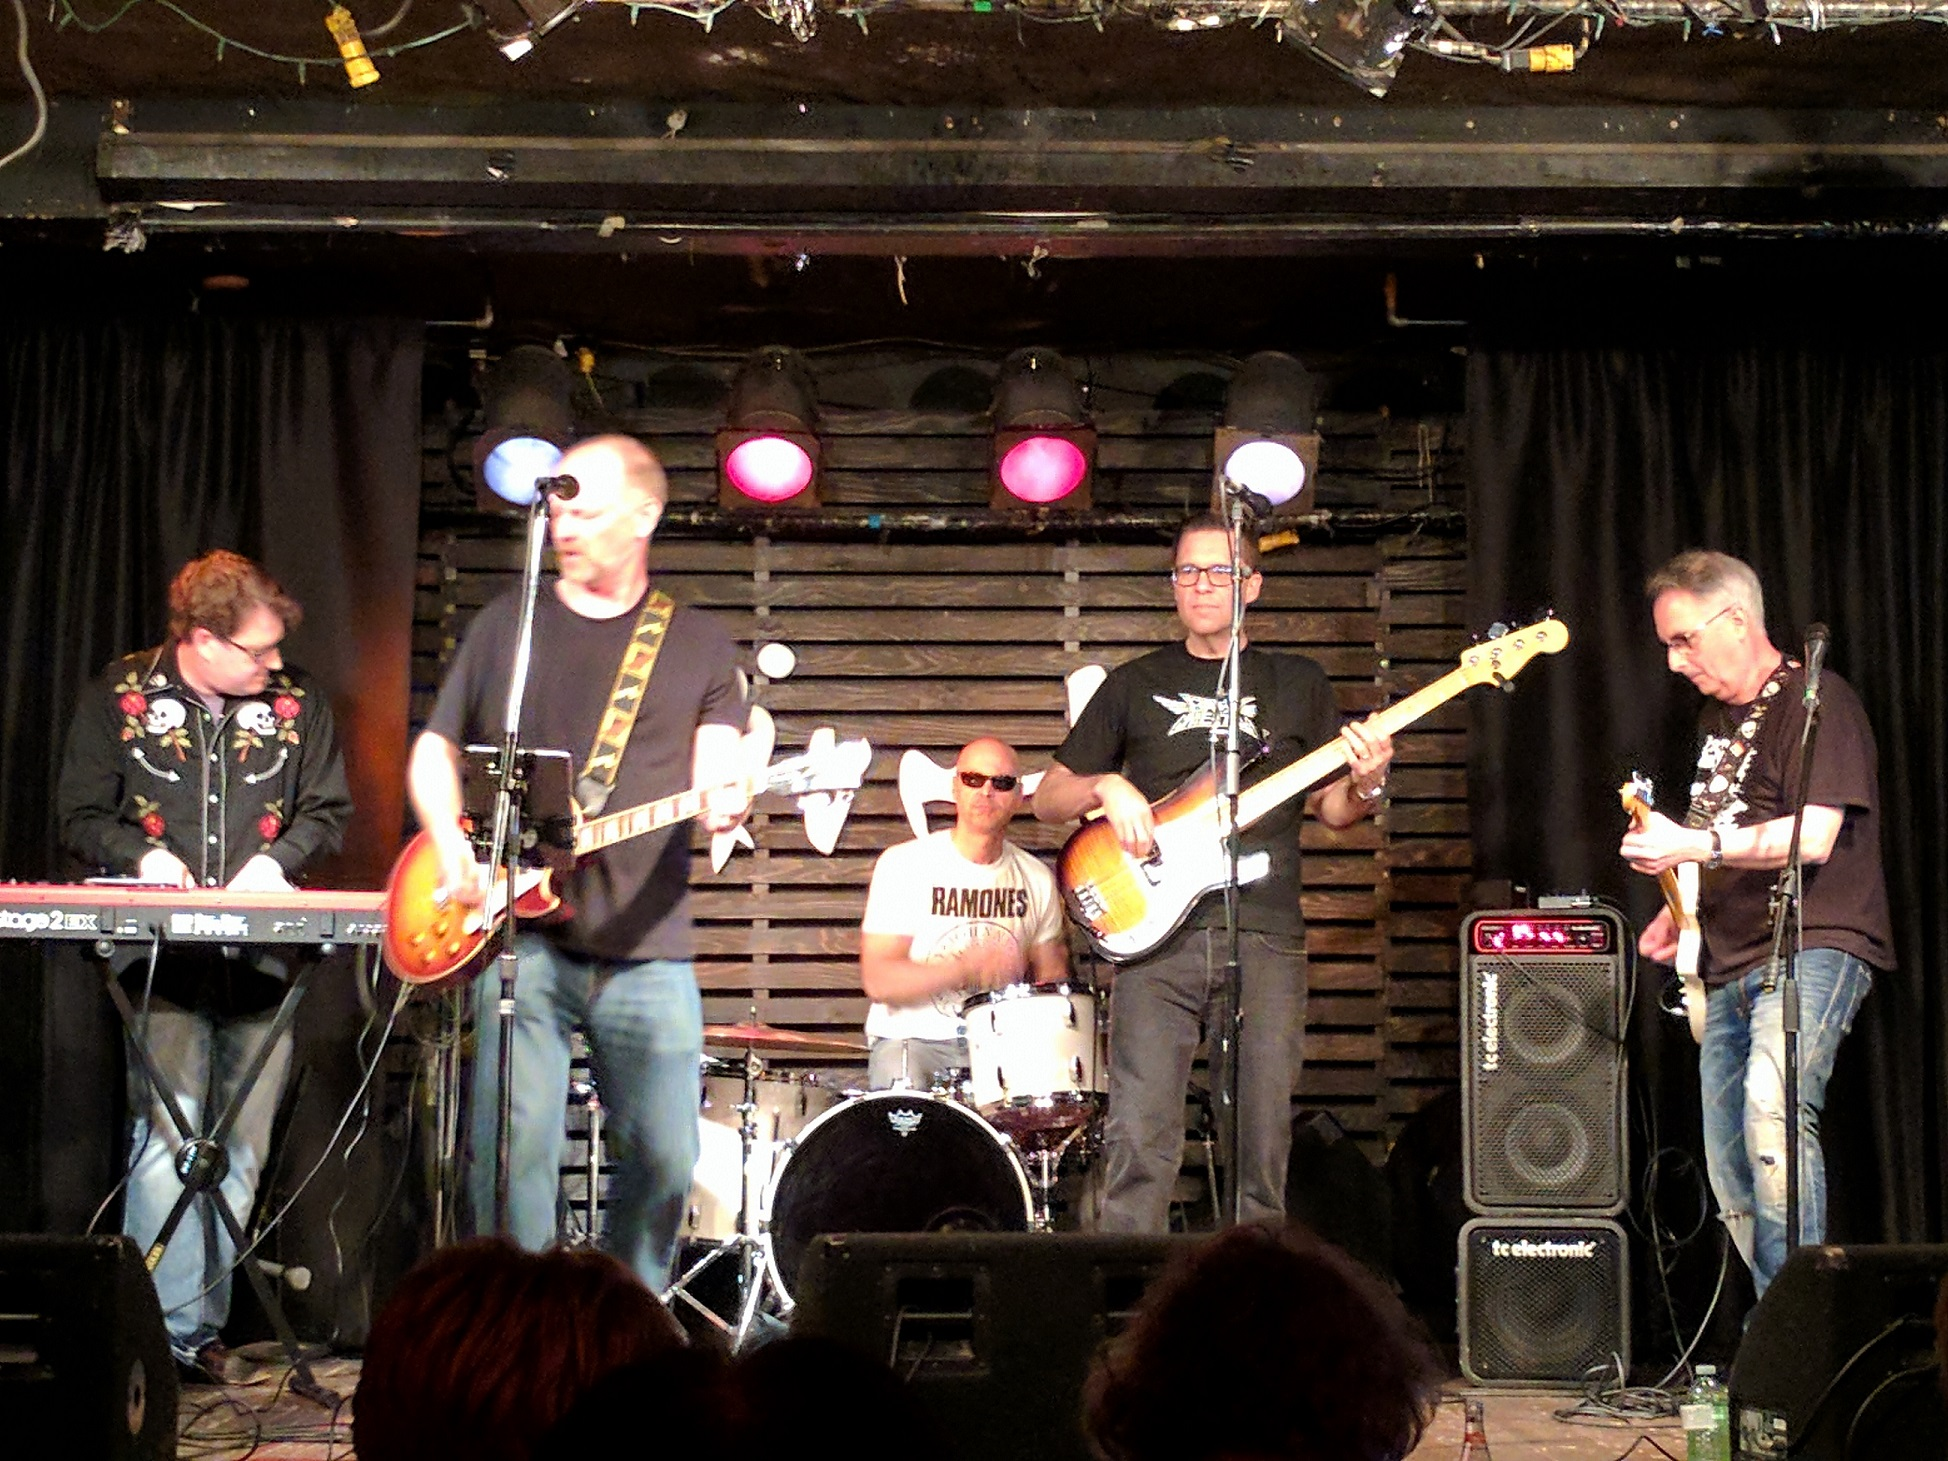 Reunited band of 1992 including members: Todd Lee, Mark Szabo, and John Fabello